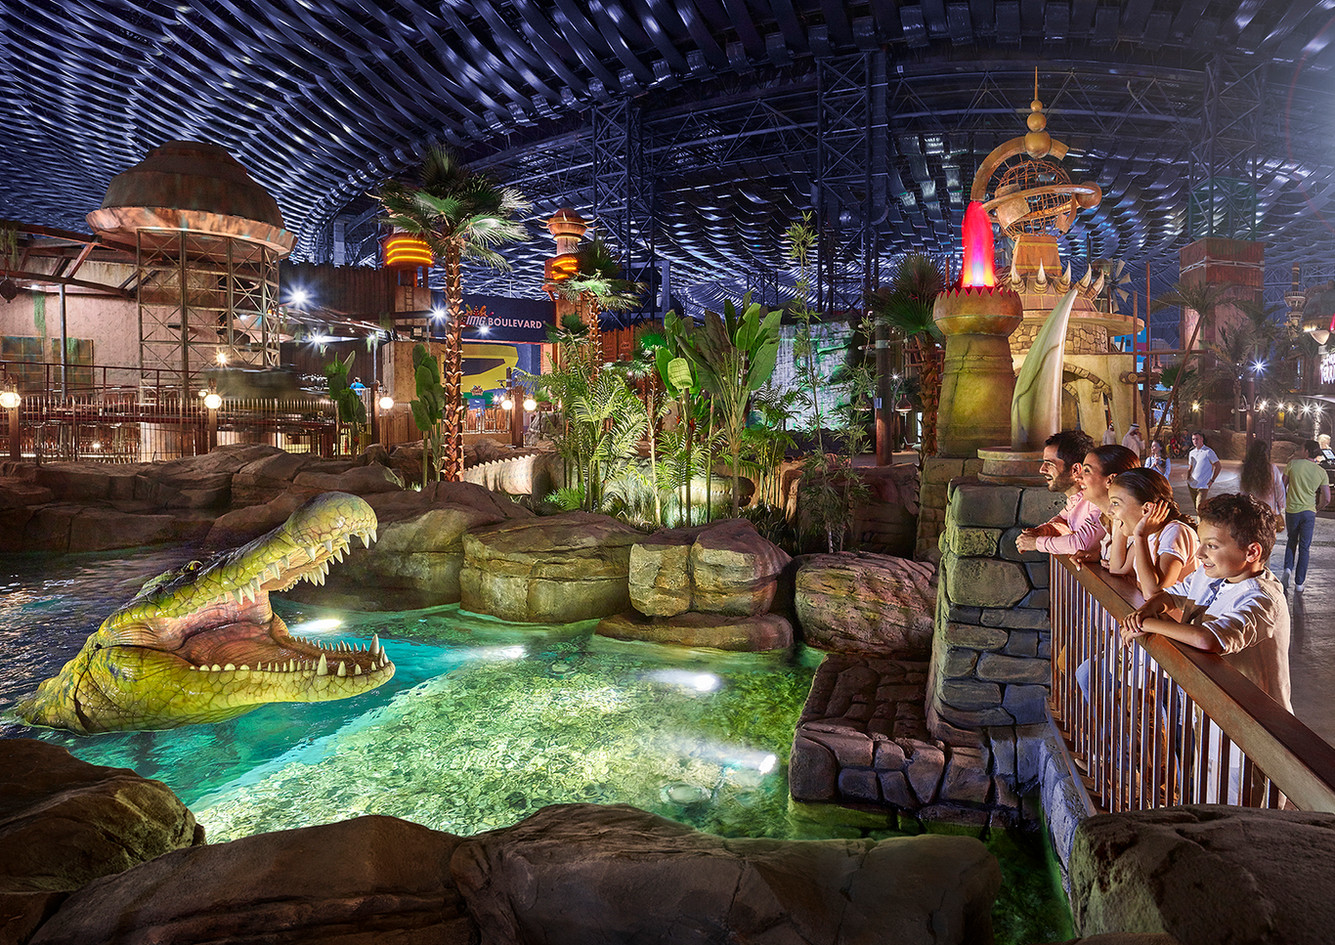 IMG WORLDS OF ADVENTURE Sprawling indoor theme park with rides